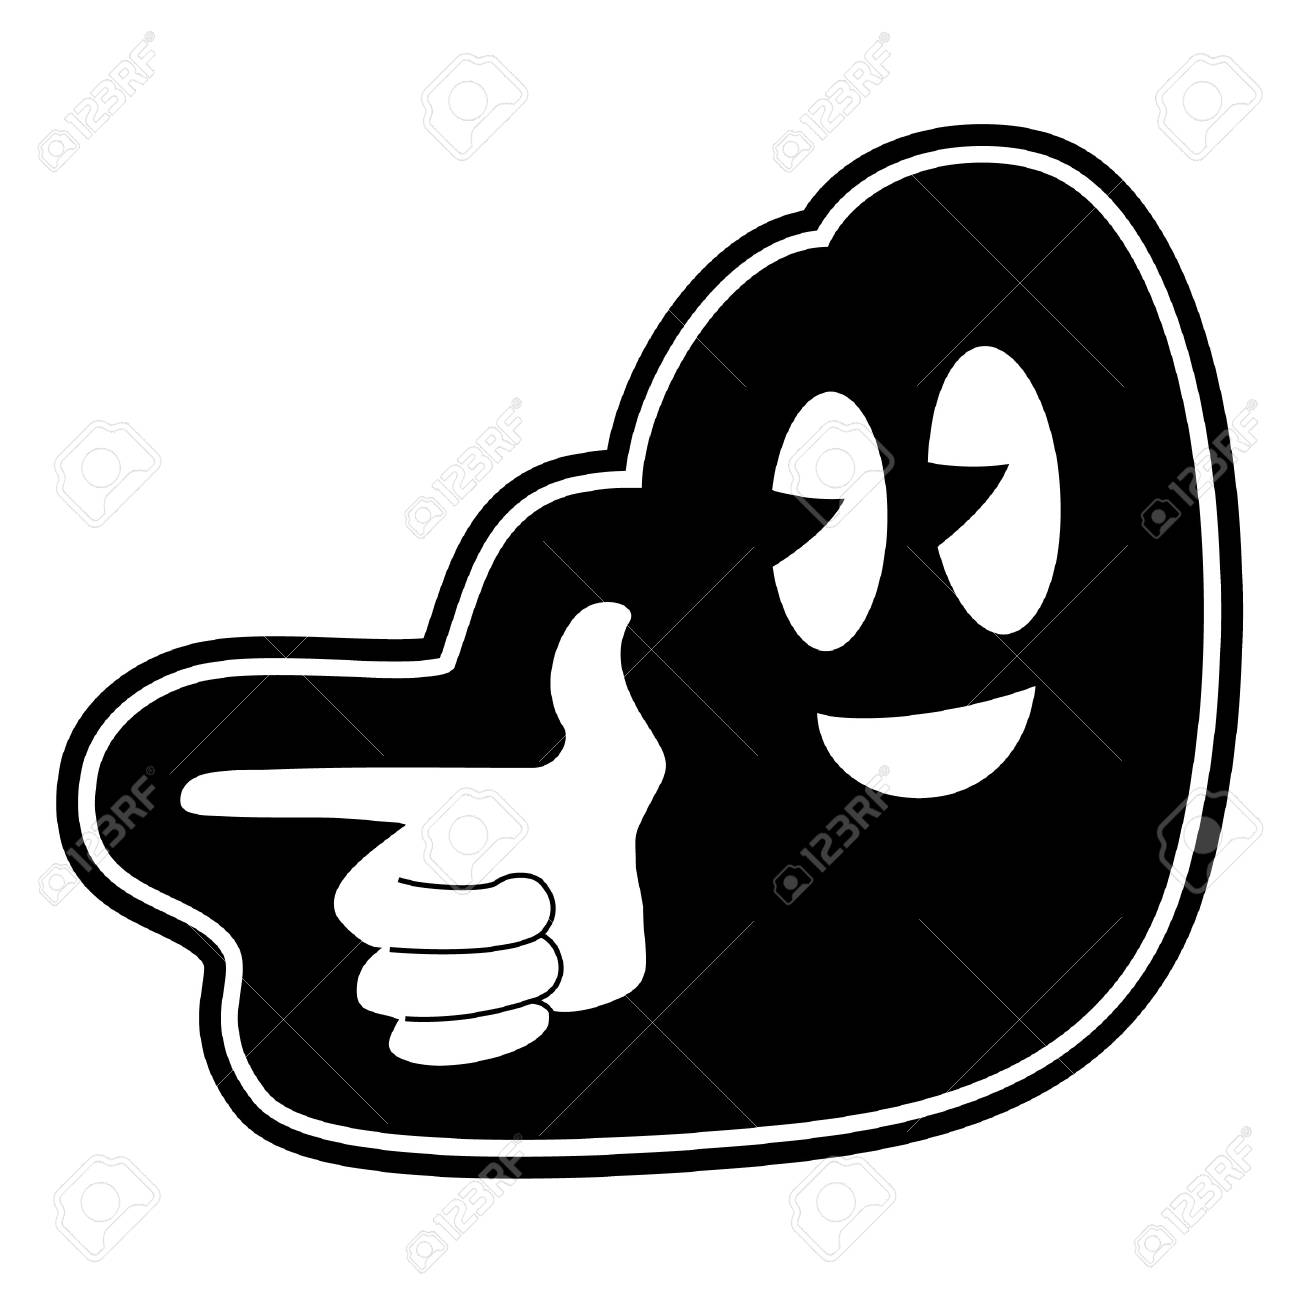 Pointing face icon Stock Vector - 12748139